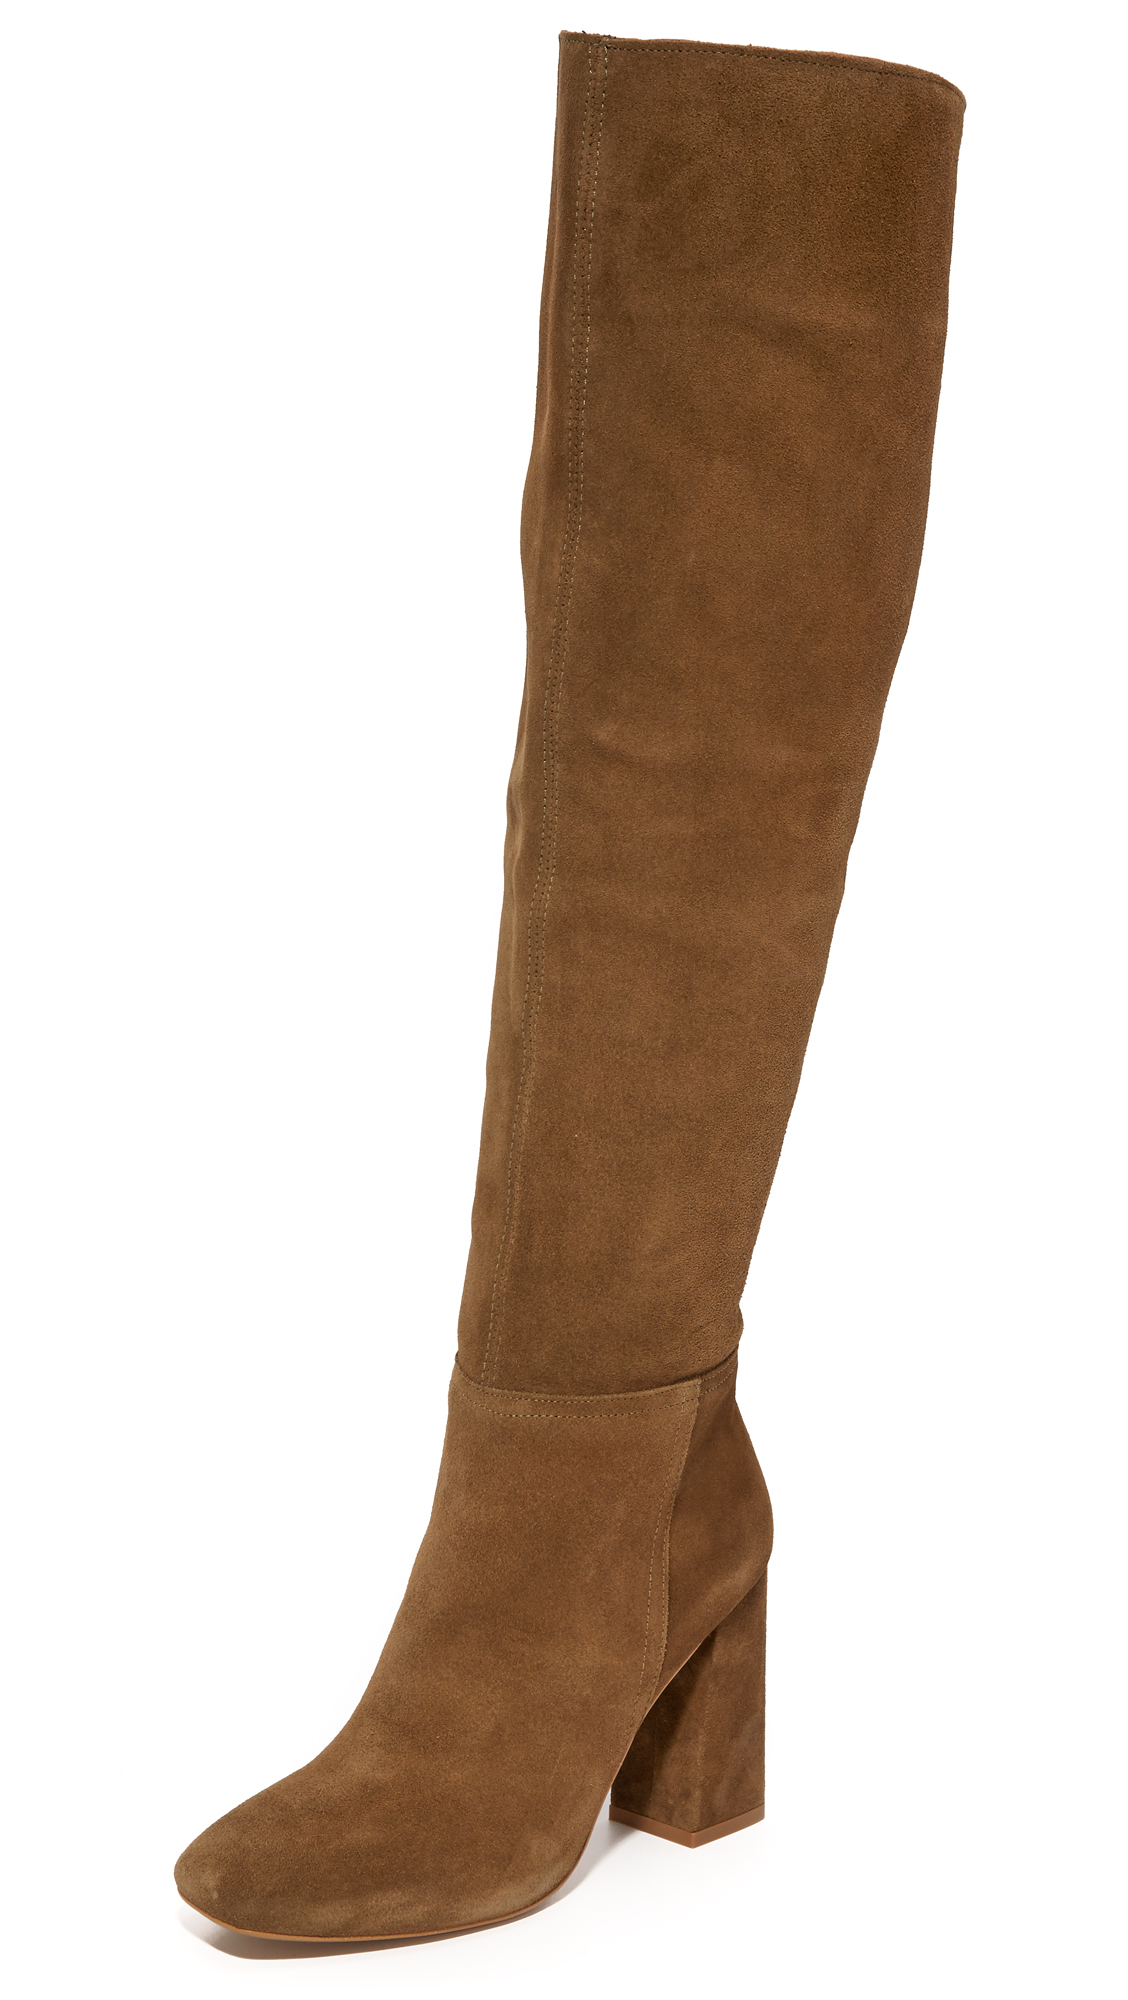 Free People Liberty Over The Knee Boots - Taupe